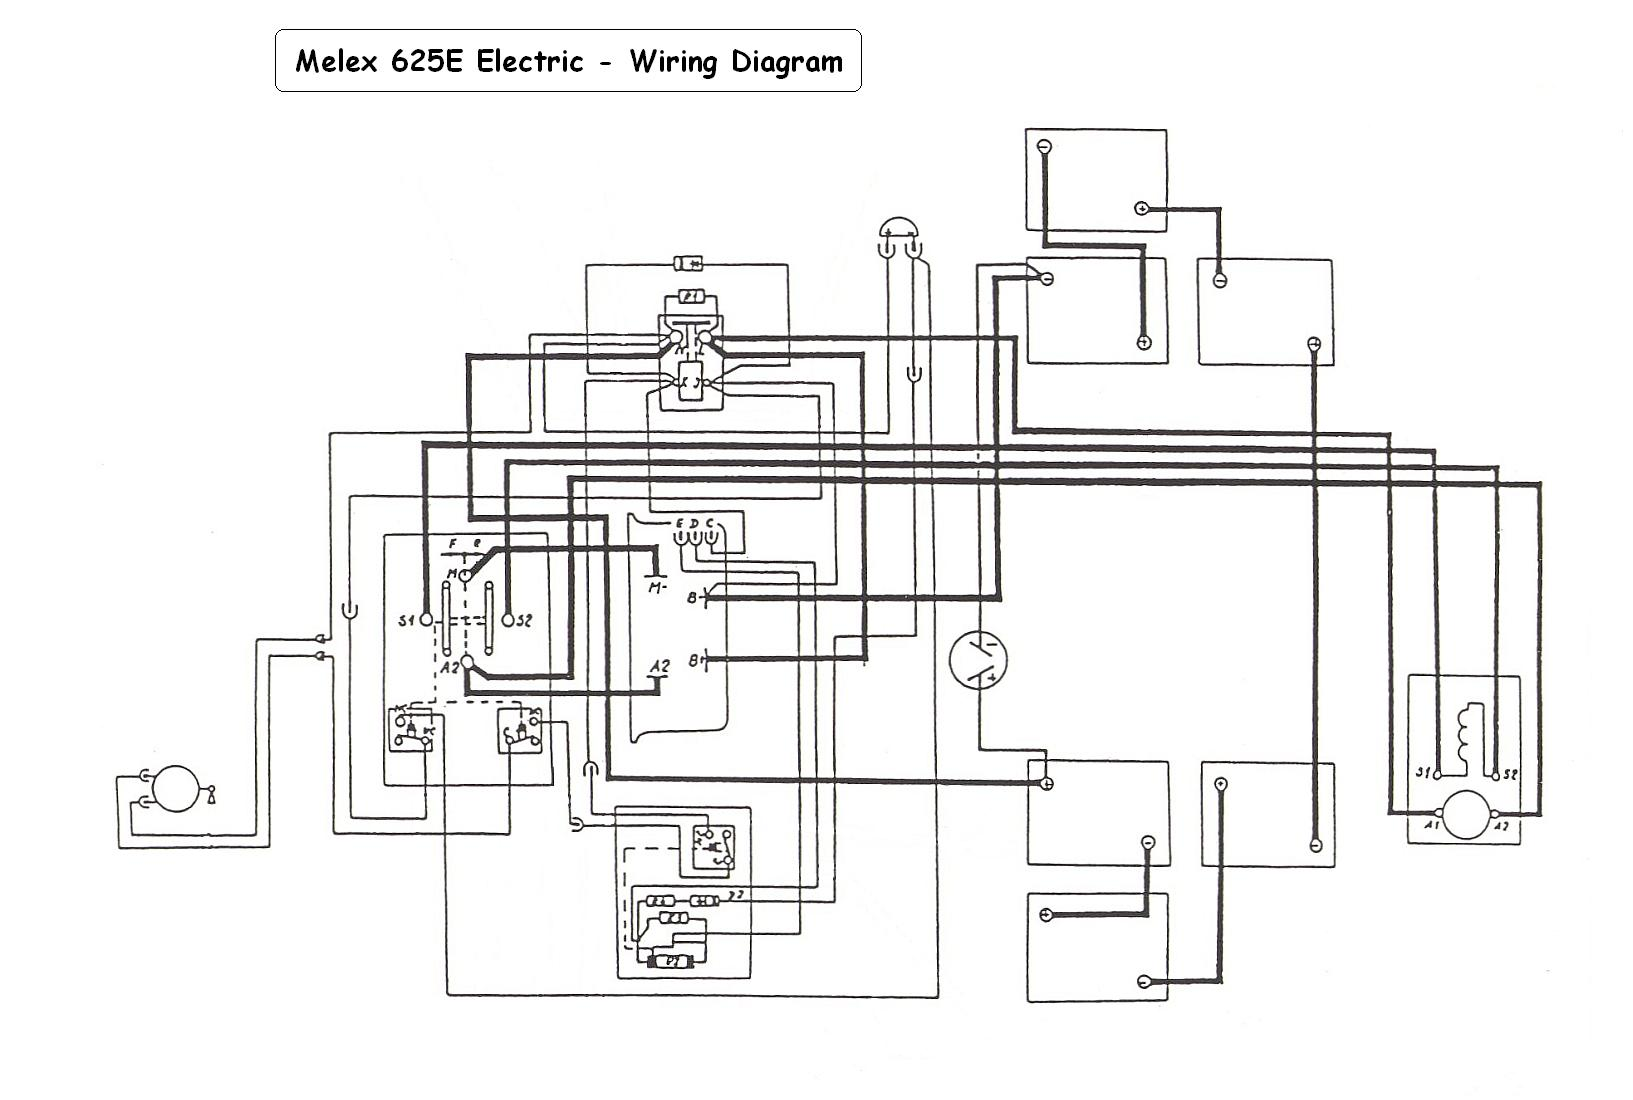 small resolution of melex 212 light wiring diagram model wiring library melex golf cart wiring diagram for a complete melex 212 wiring diagram